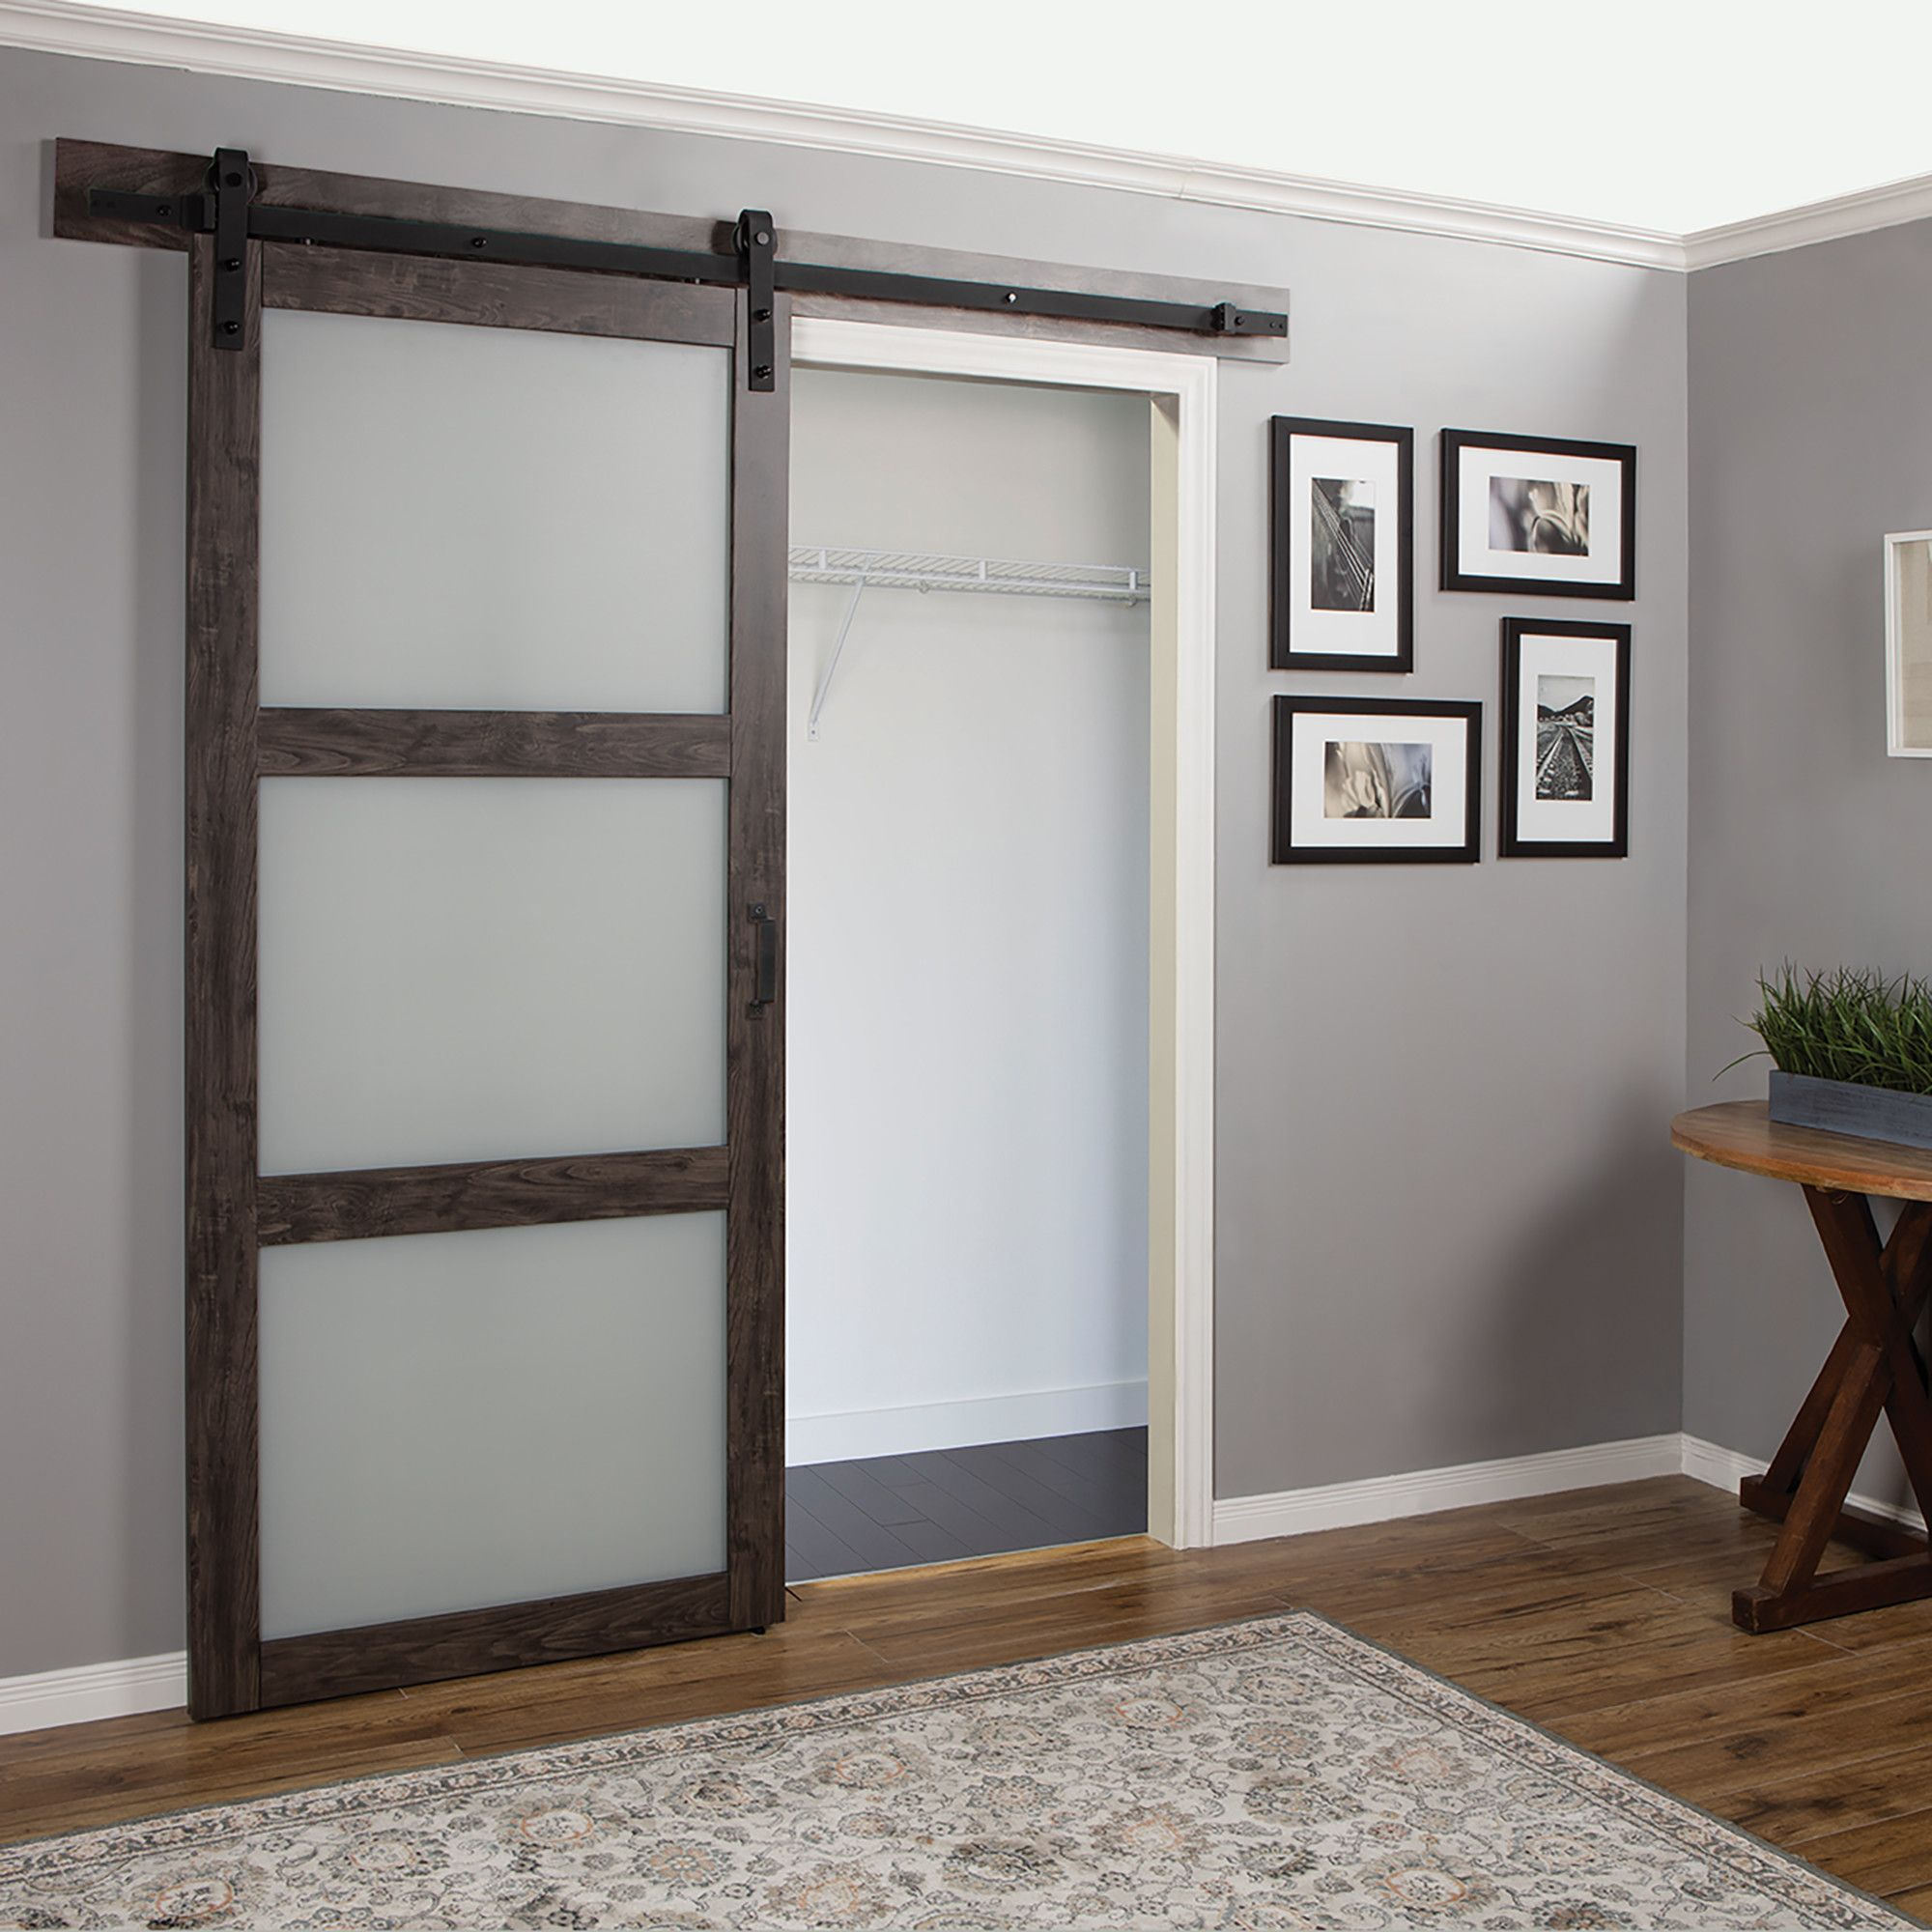 Erias Home Designs Continental Frosted Glass 1 Panel Ironage Laminate Interior Barn Door Glass Barn Doors Barn Doors Sliding Sliding Doors Interior